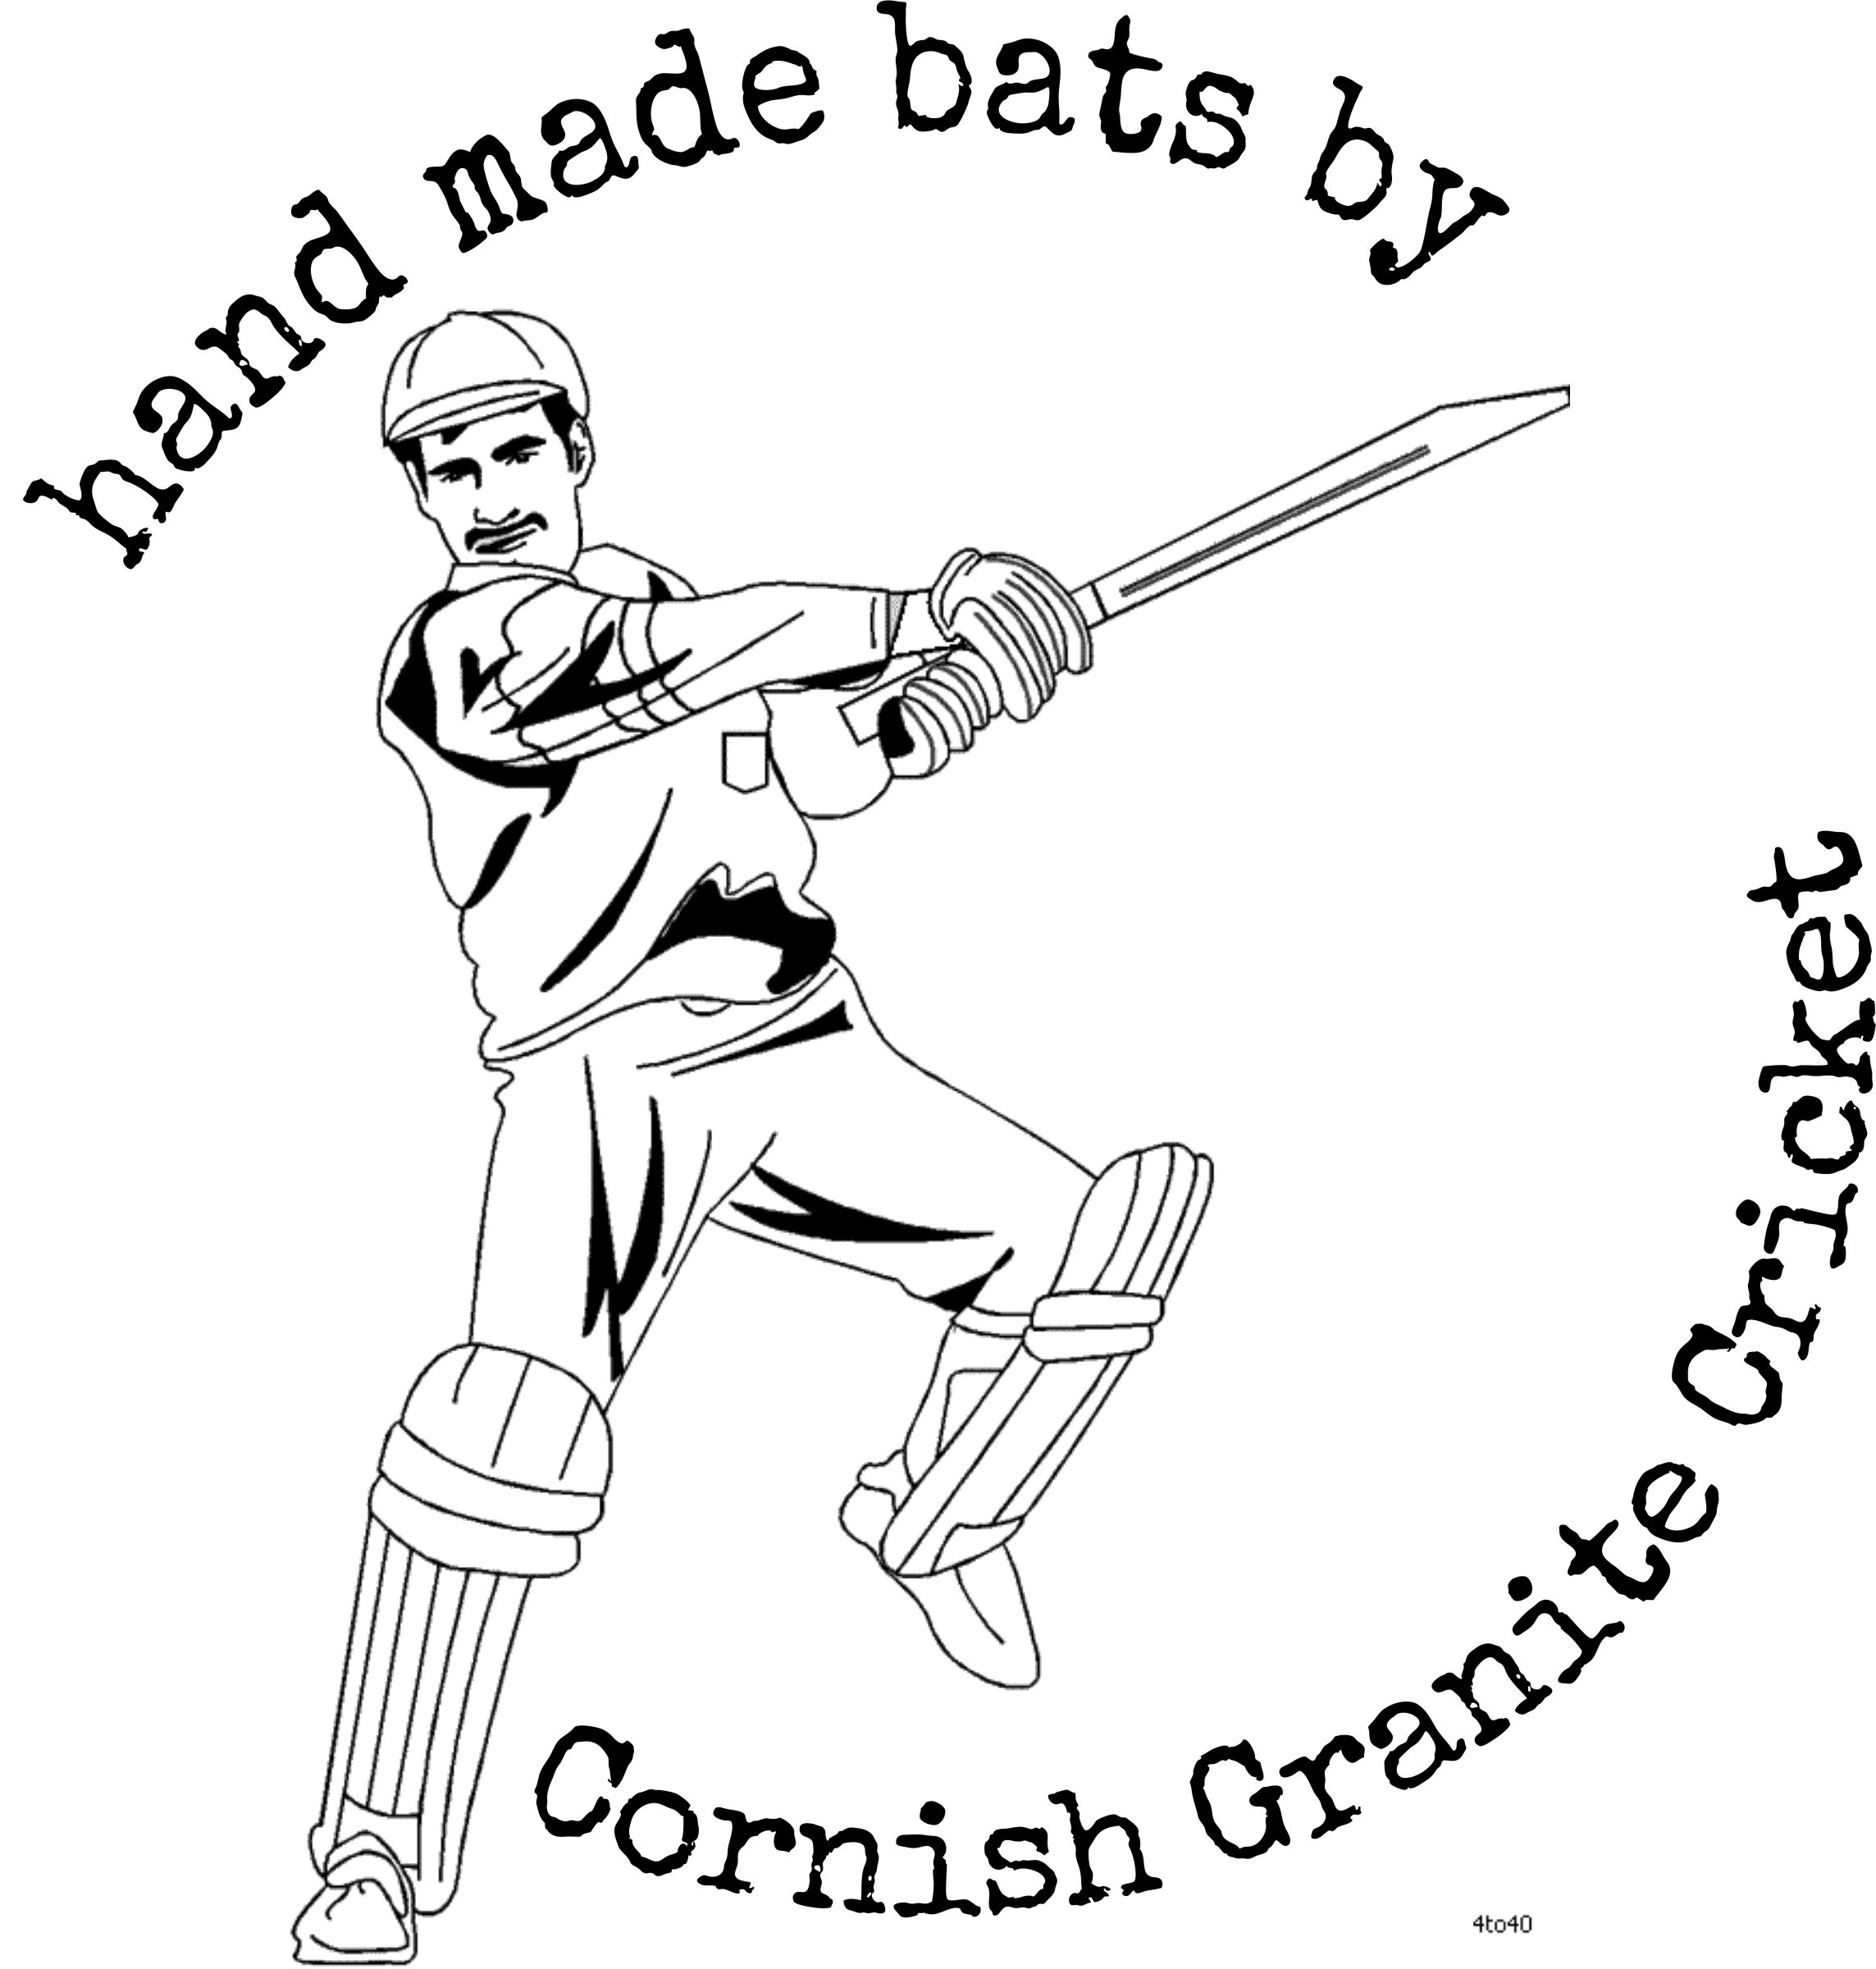 Hand made Cricket Bats